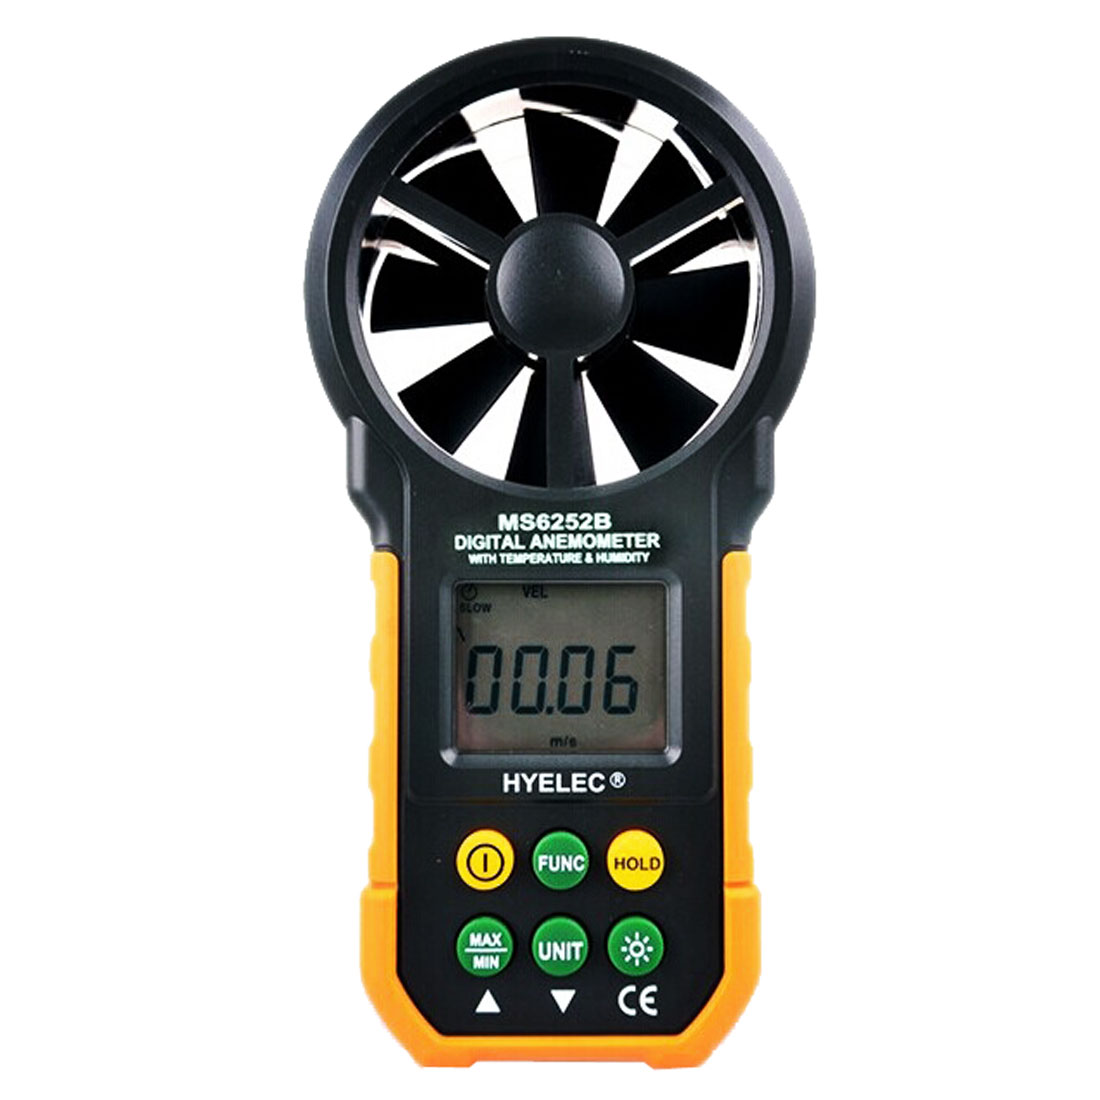 MS6252B Handheld Digital LCD Display Anemometer Wind Speed Meter Air Flow Tester USB